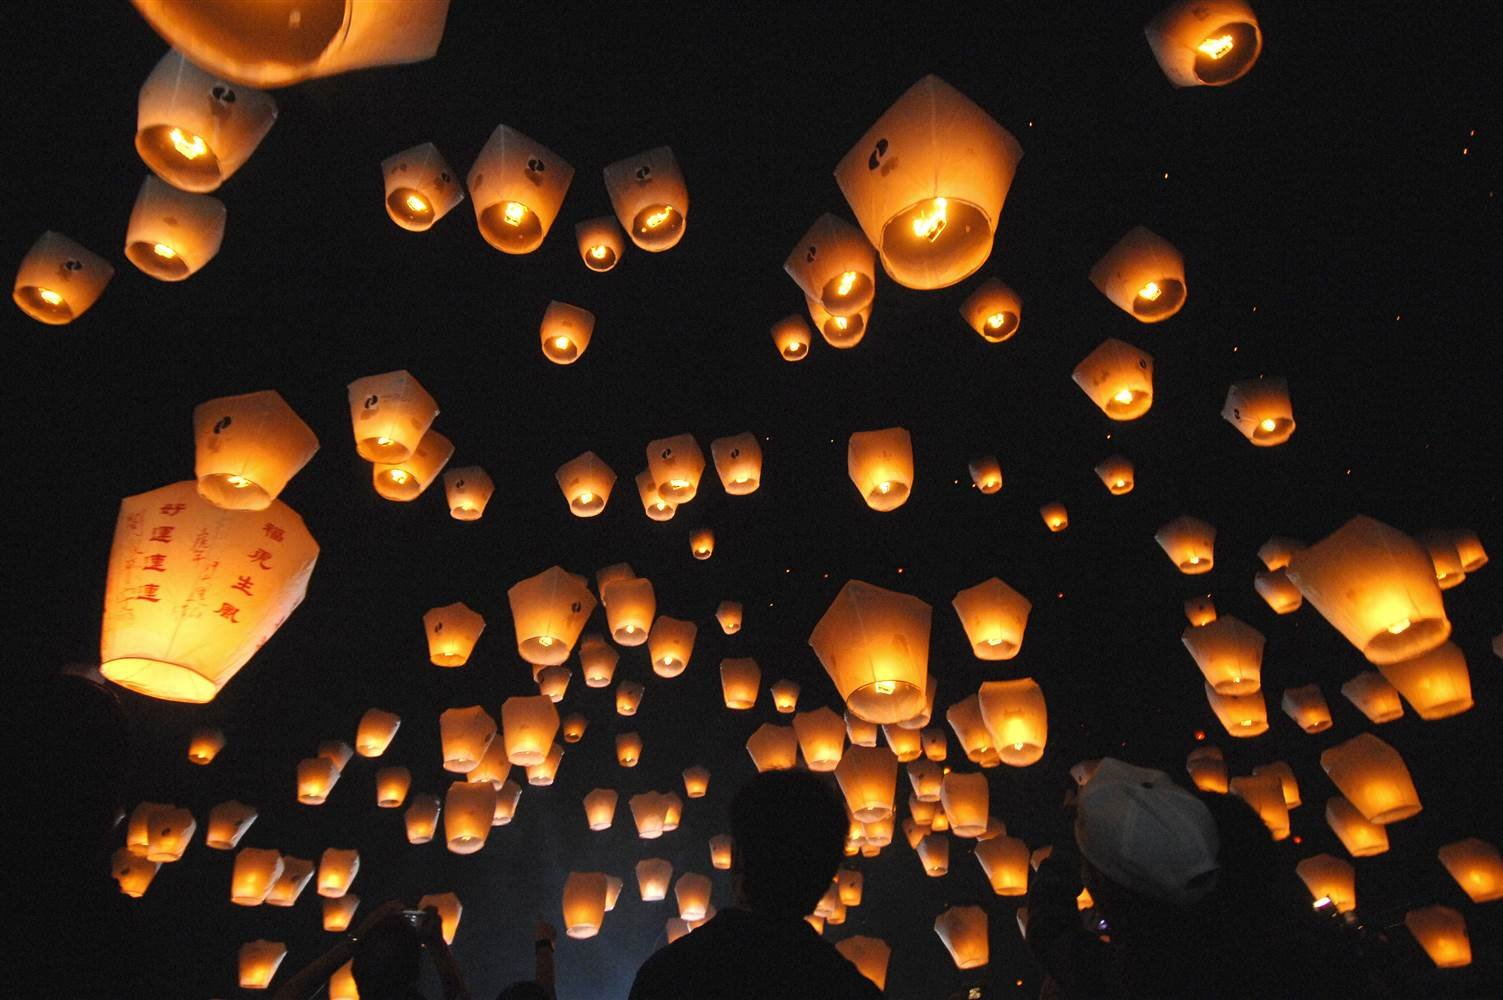 Starting Jan. 1, people caught releasing the lanterns, also known as Chinese lanterns, will face fines of up to $2,000.